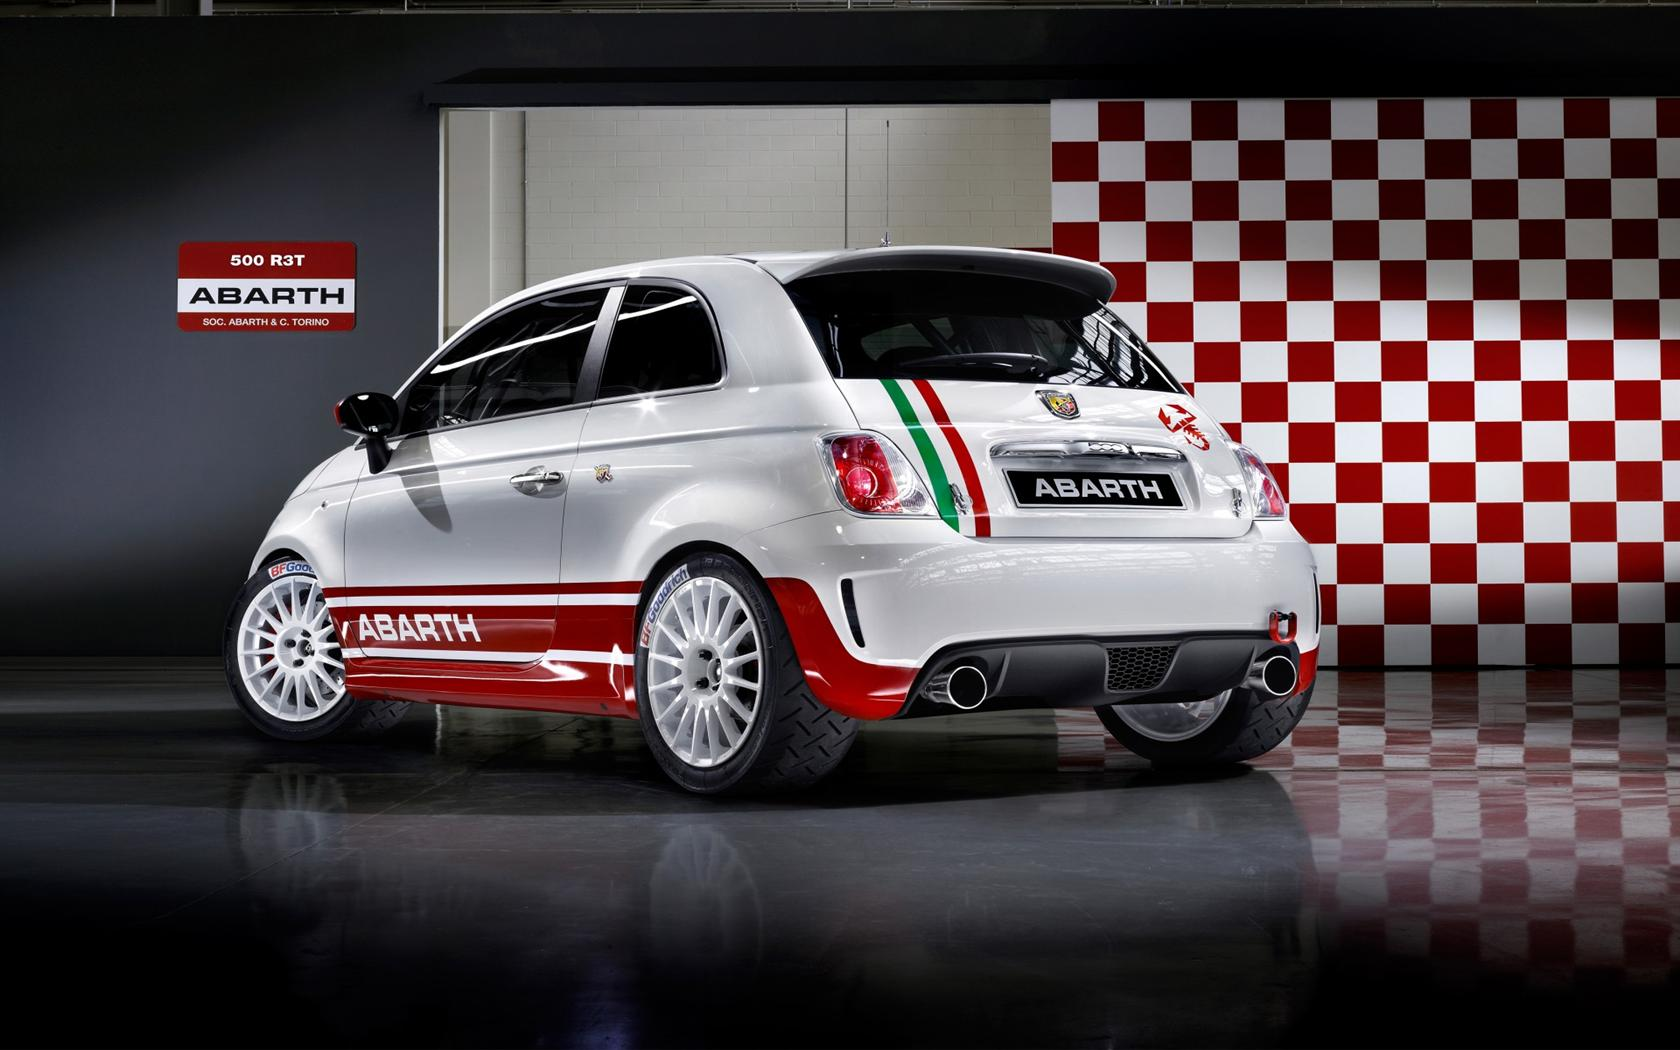 2010 Abarth 500 Image Https Www Conceptcarz Com Images